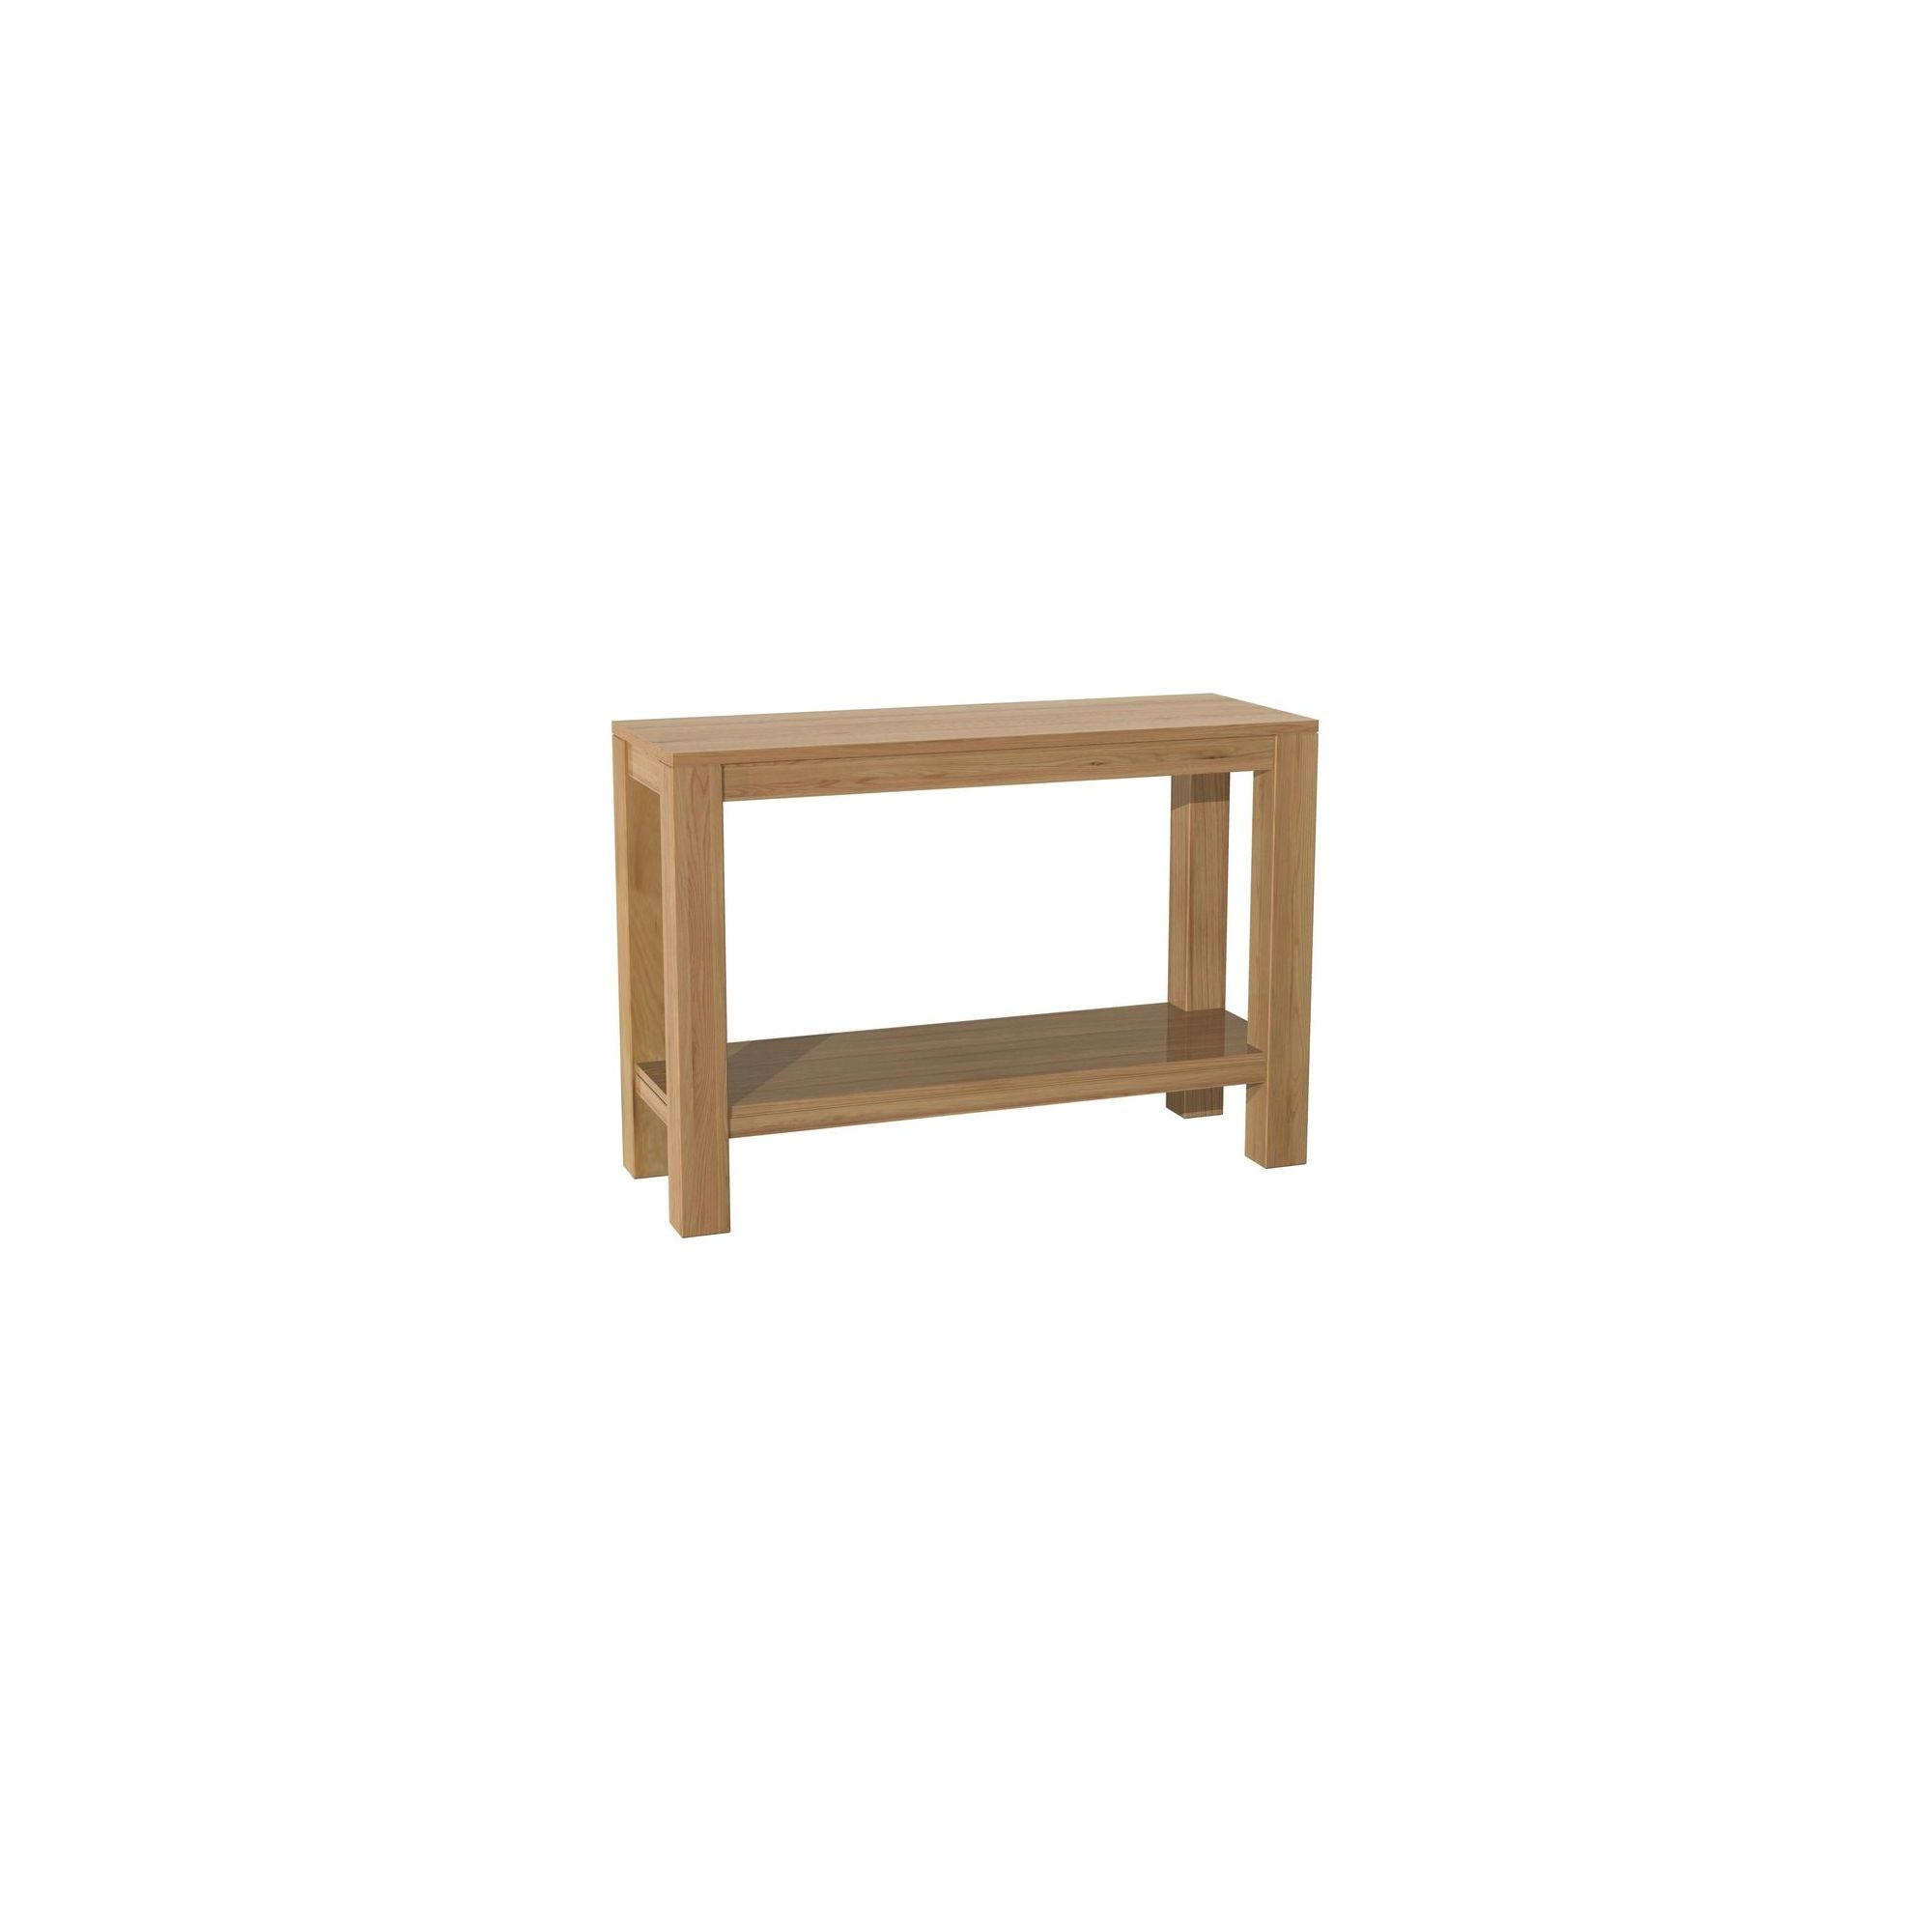 Kelburn Furniture Milano Console Table in Clear Satin Lacquer